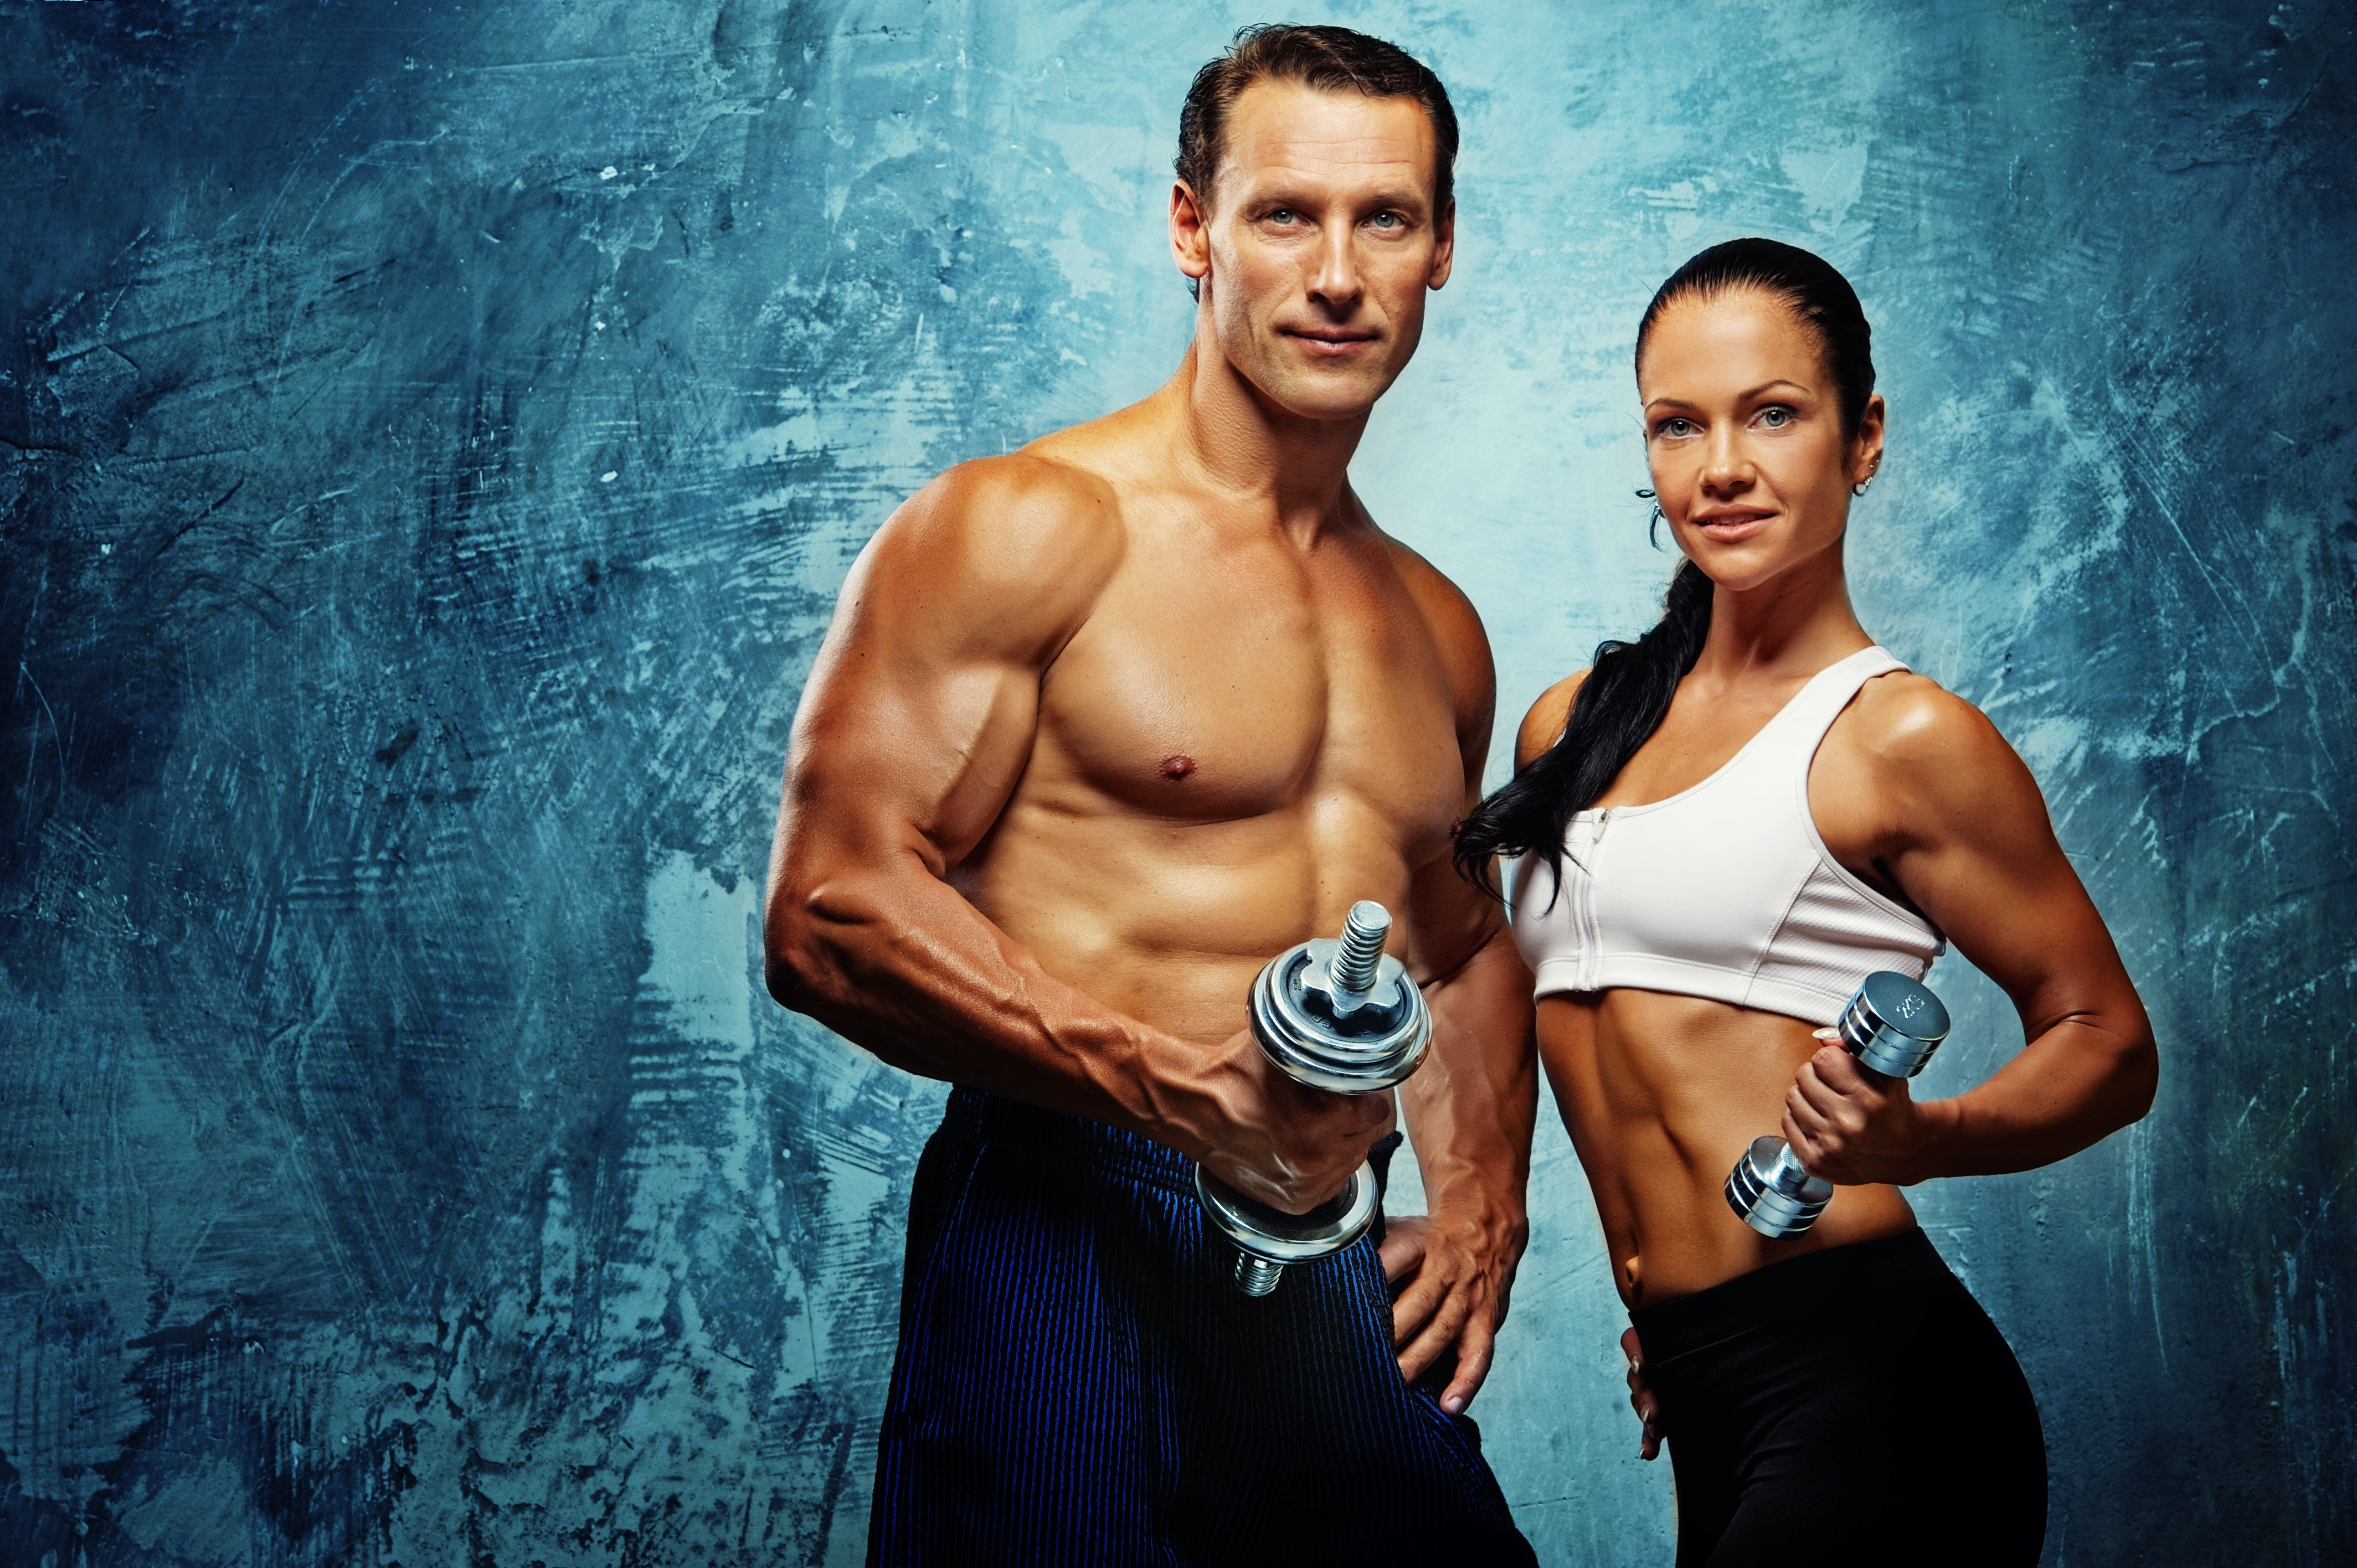 is bodybuilding a sport Sport definition, an athletic activity requiring skill or physical prowess and often of a competitive nature, as racing, baseball, tennis, golf.